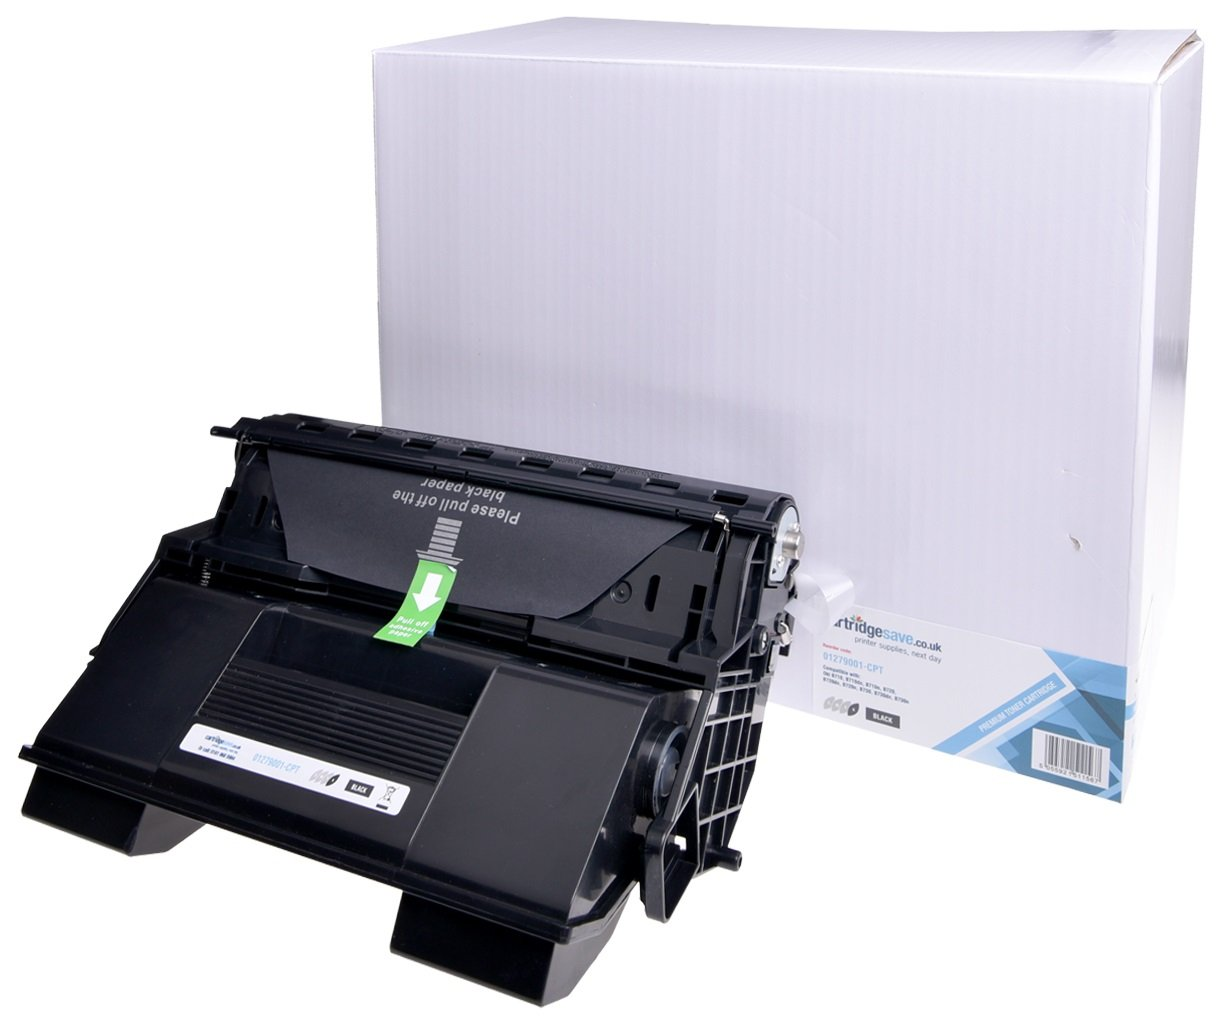 Compatible Black OKI 01279001 Toner Cartridge (1279001 Laser Printer Cartridge)